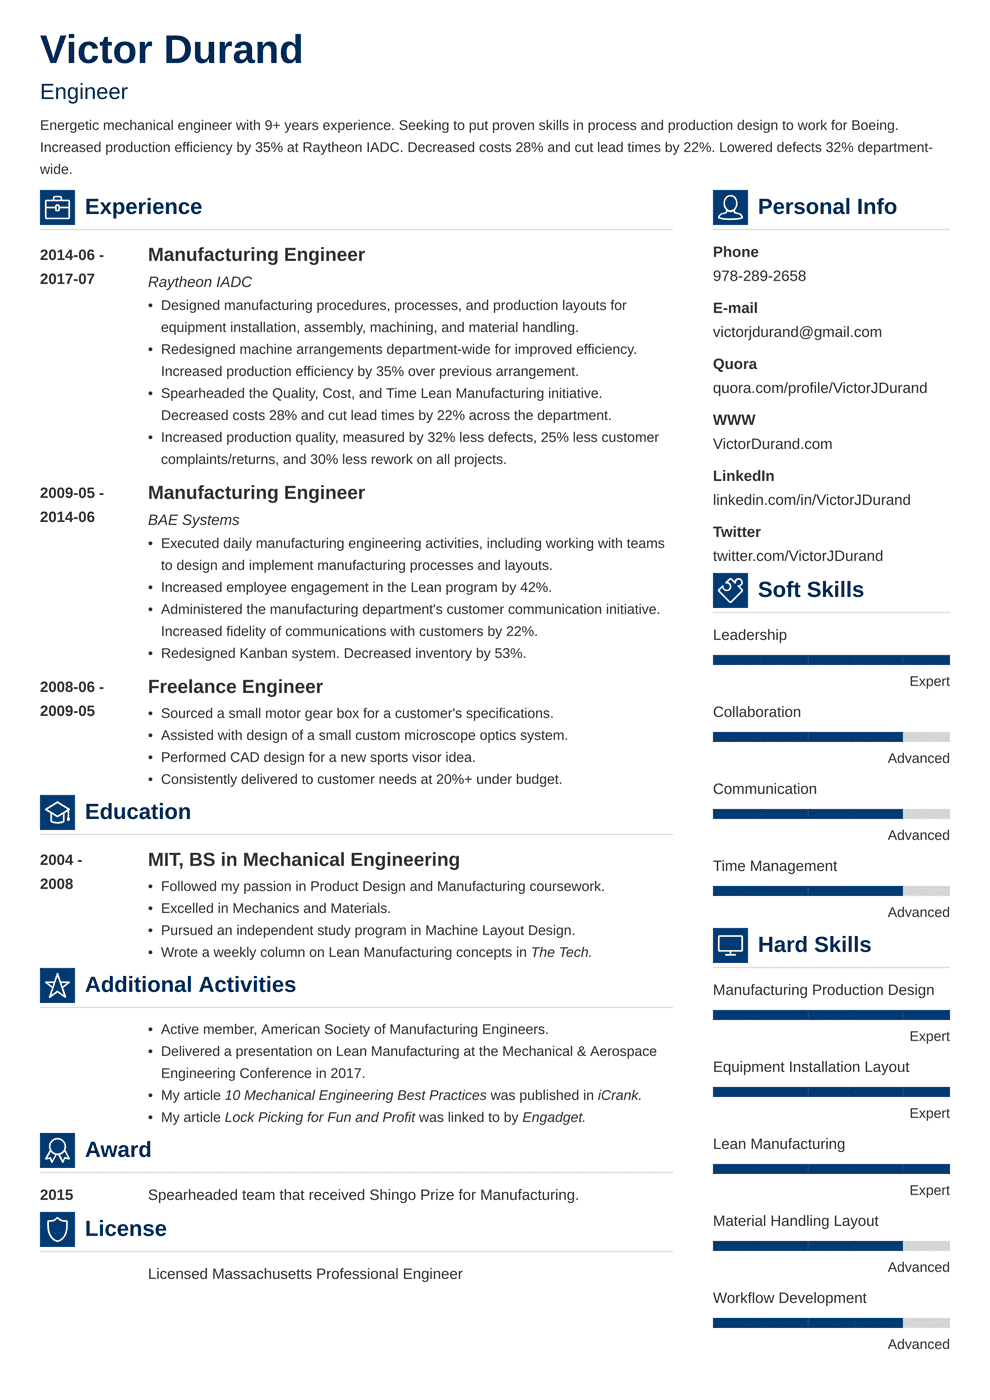 Engineering Resume: Templates, Examples & Essential Skills